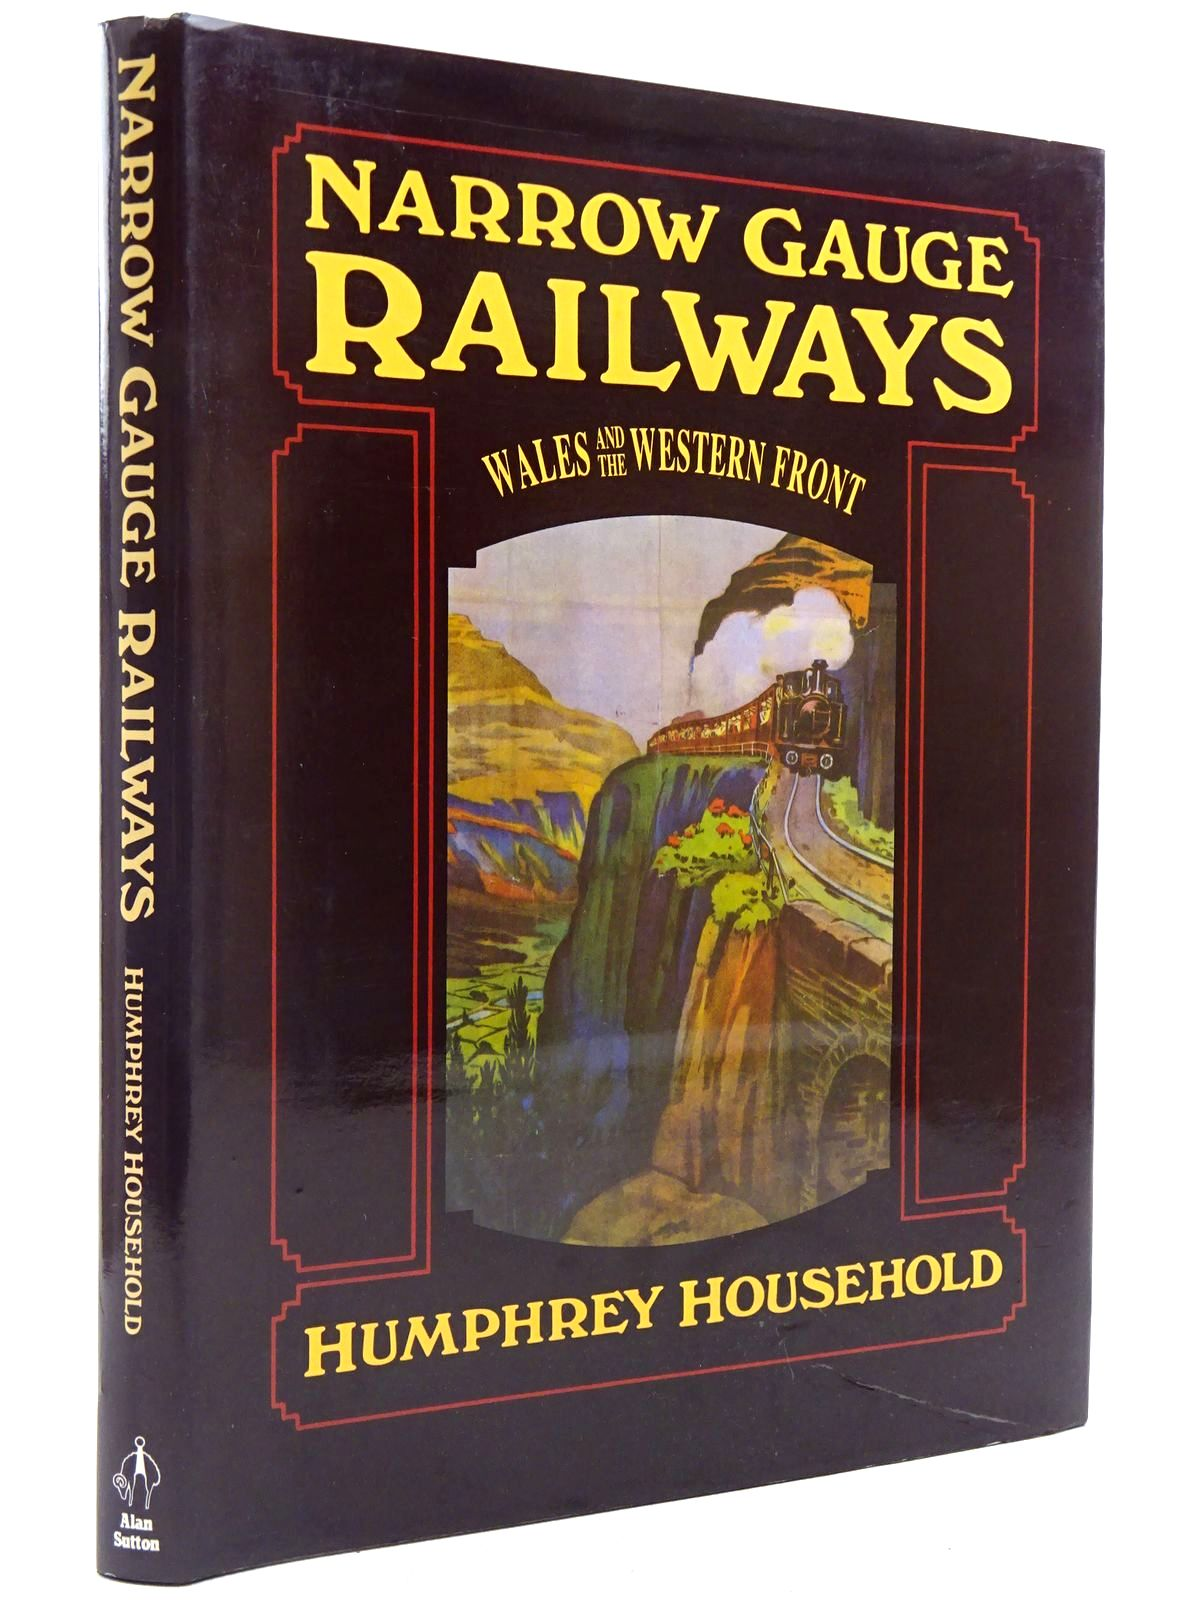 Photo of NARROW GAUGE RAILWAYS WALES AND THE WESTERN FRONT written by Household, Humphrey published by Alan Sutton (STOCK CODE: 2128790)  for sale by Stella & Rose's Books